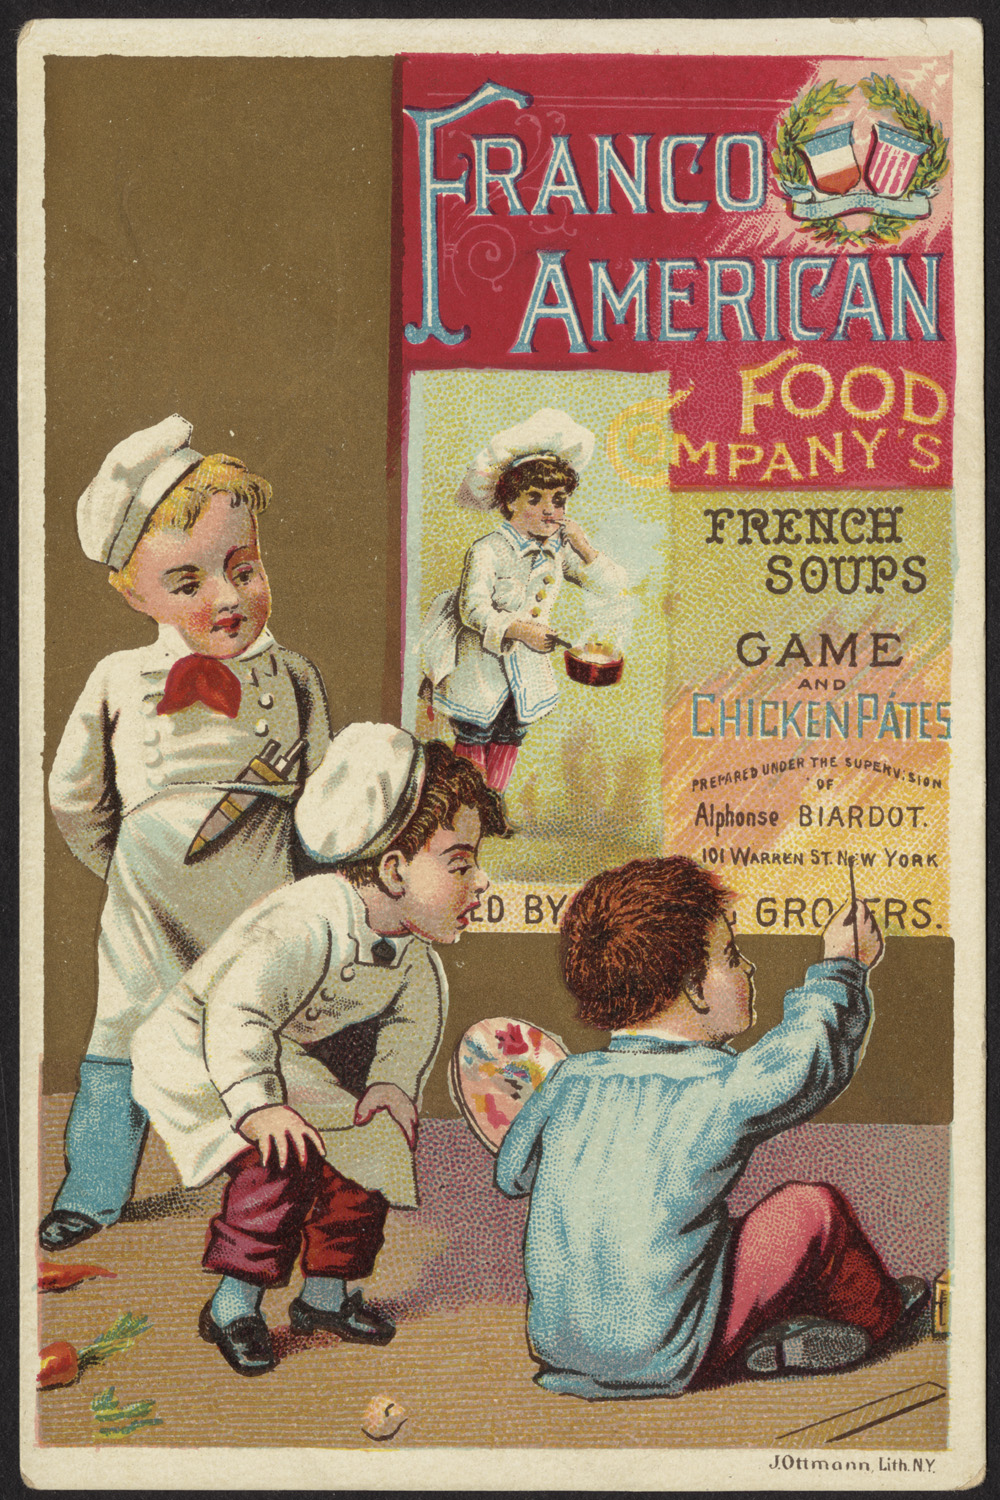 Franco american food company 39 s french soups game and chic for American cuisine boston